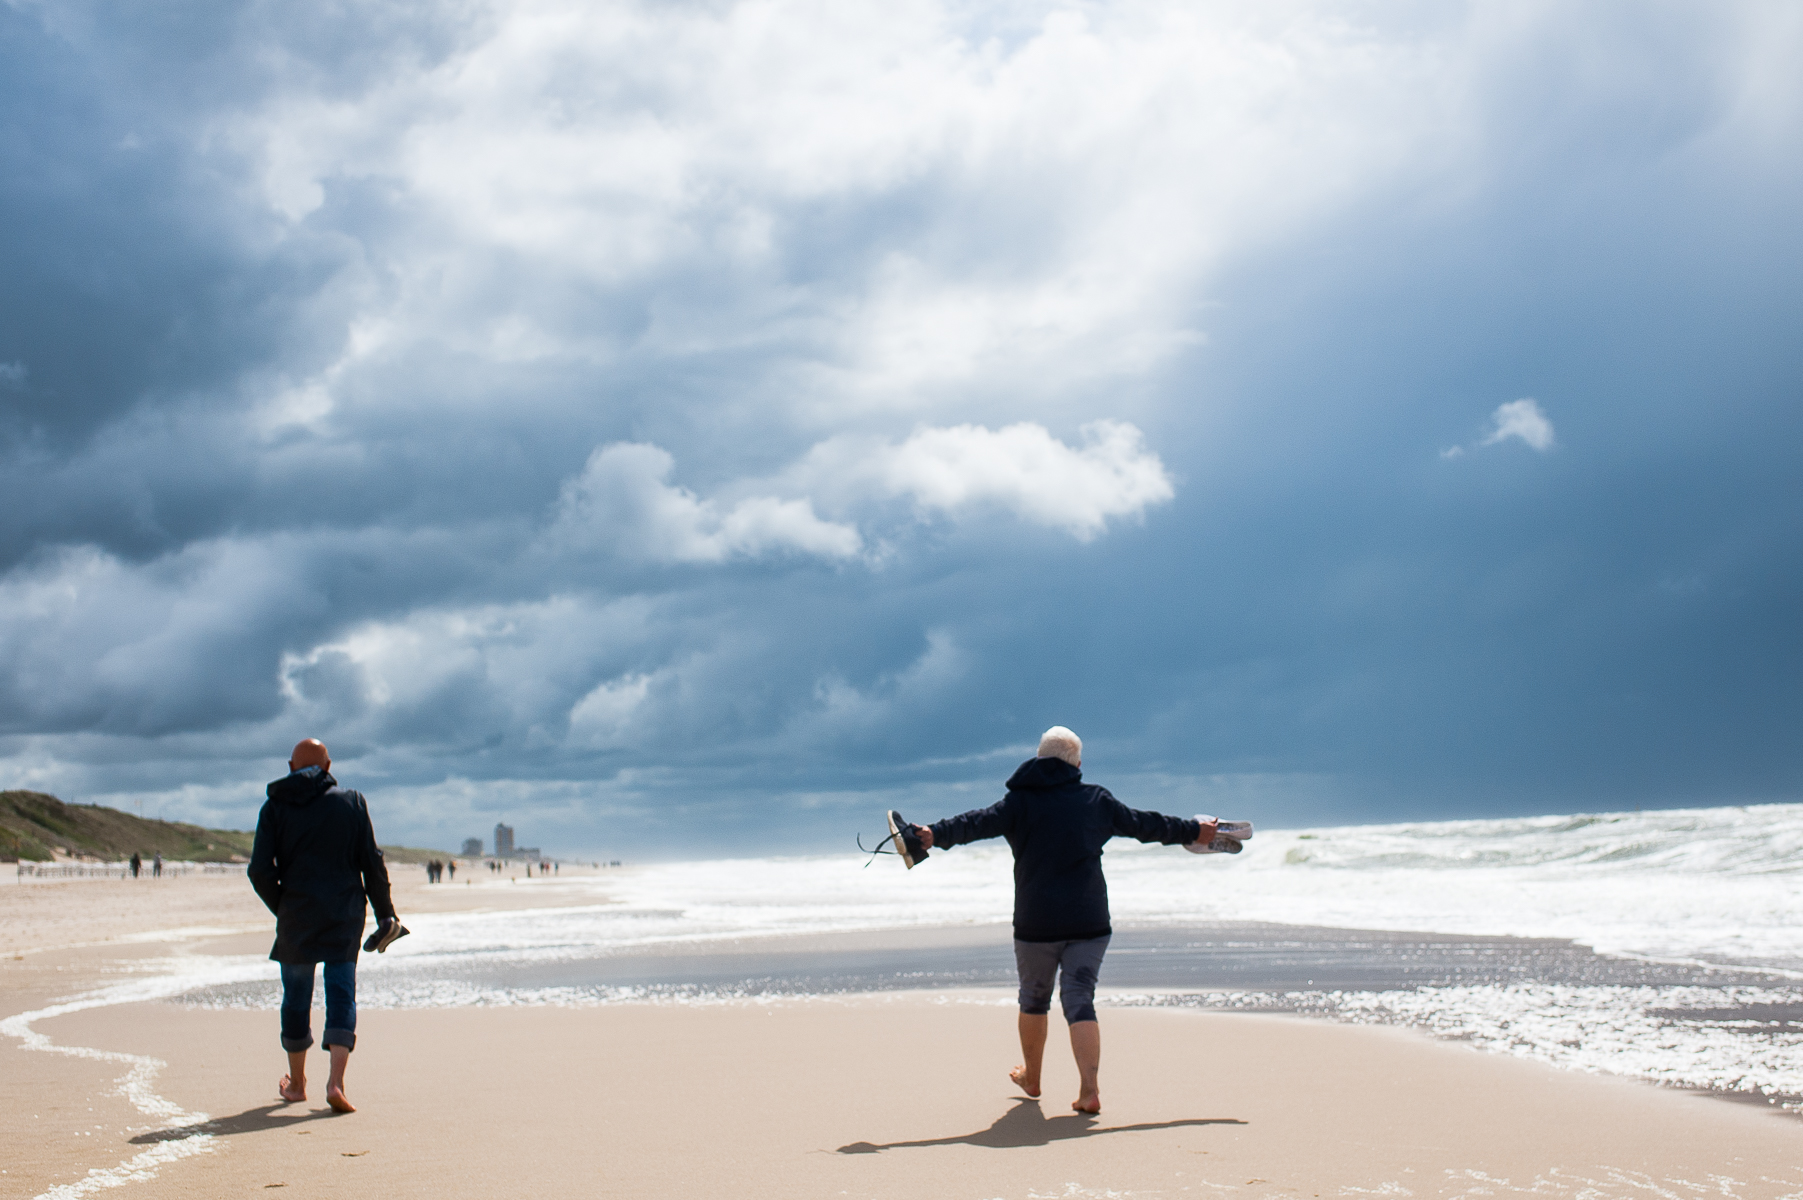 Mom and dad walk on the beach from Wenningstedt to Westerland. Sylt, Germany, June 21, 2018.